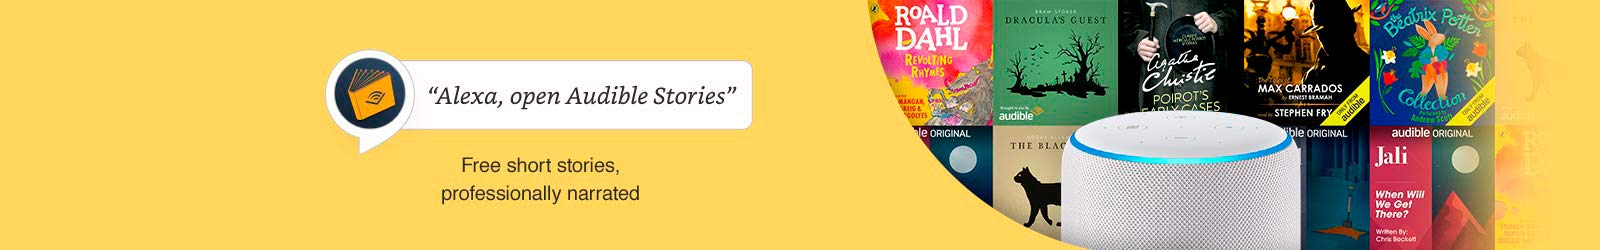 'Alexa, open Audible Stories'. Free short stories, professionally narrated.